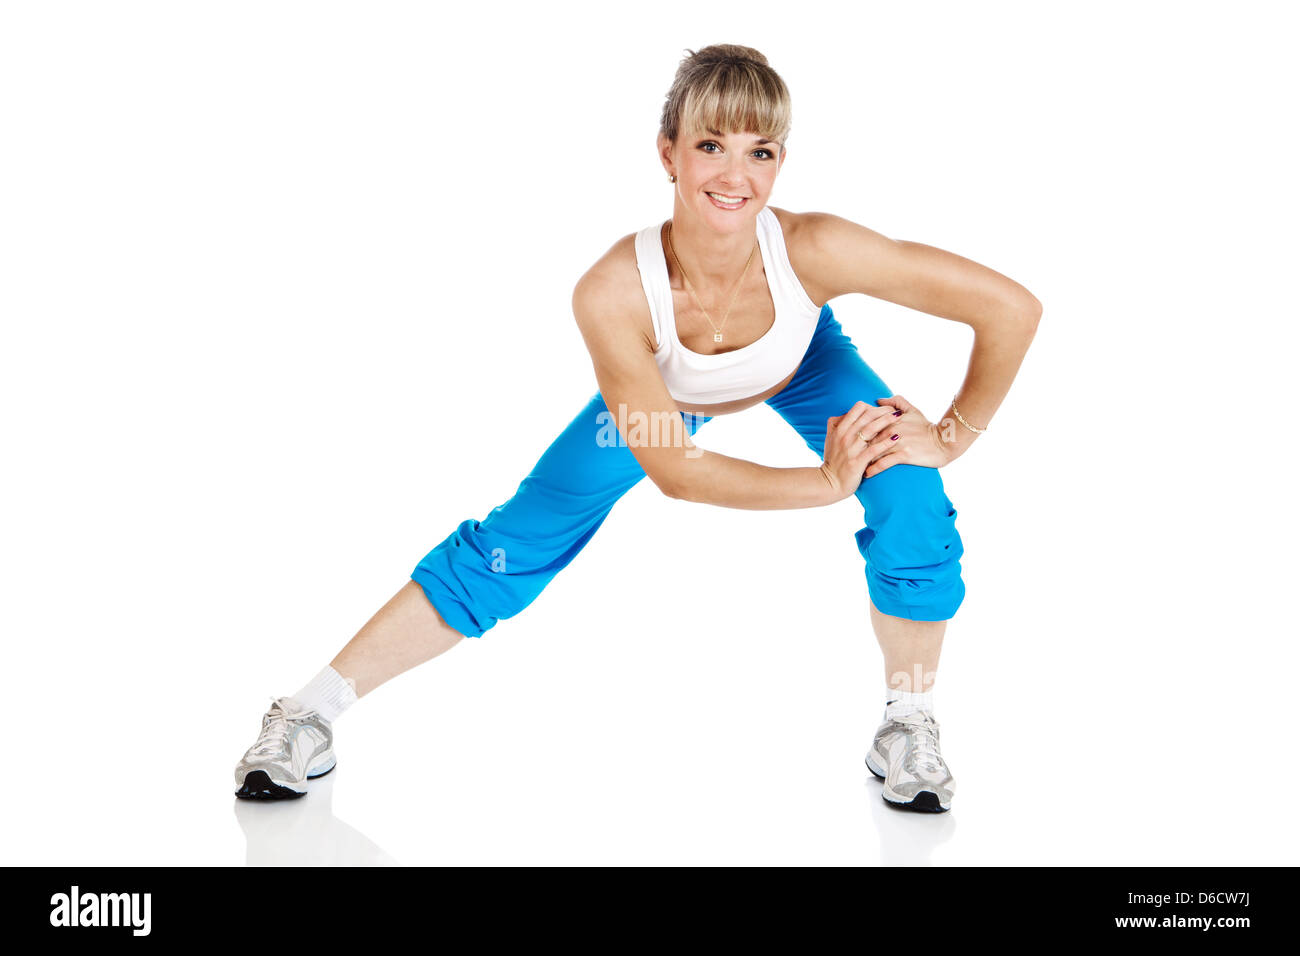 attractive woman in the gymnastic pose - Stock Image